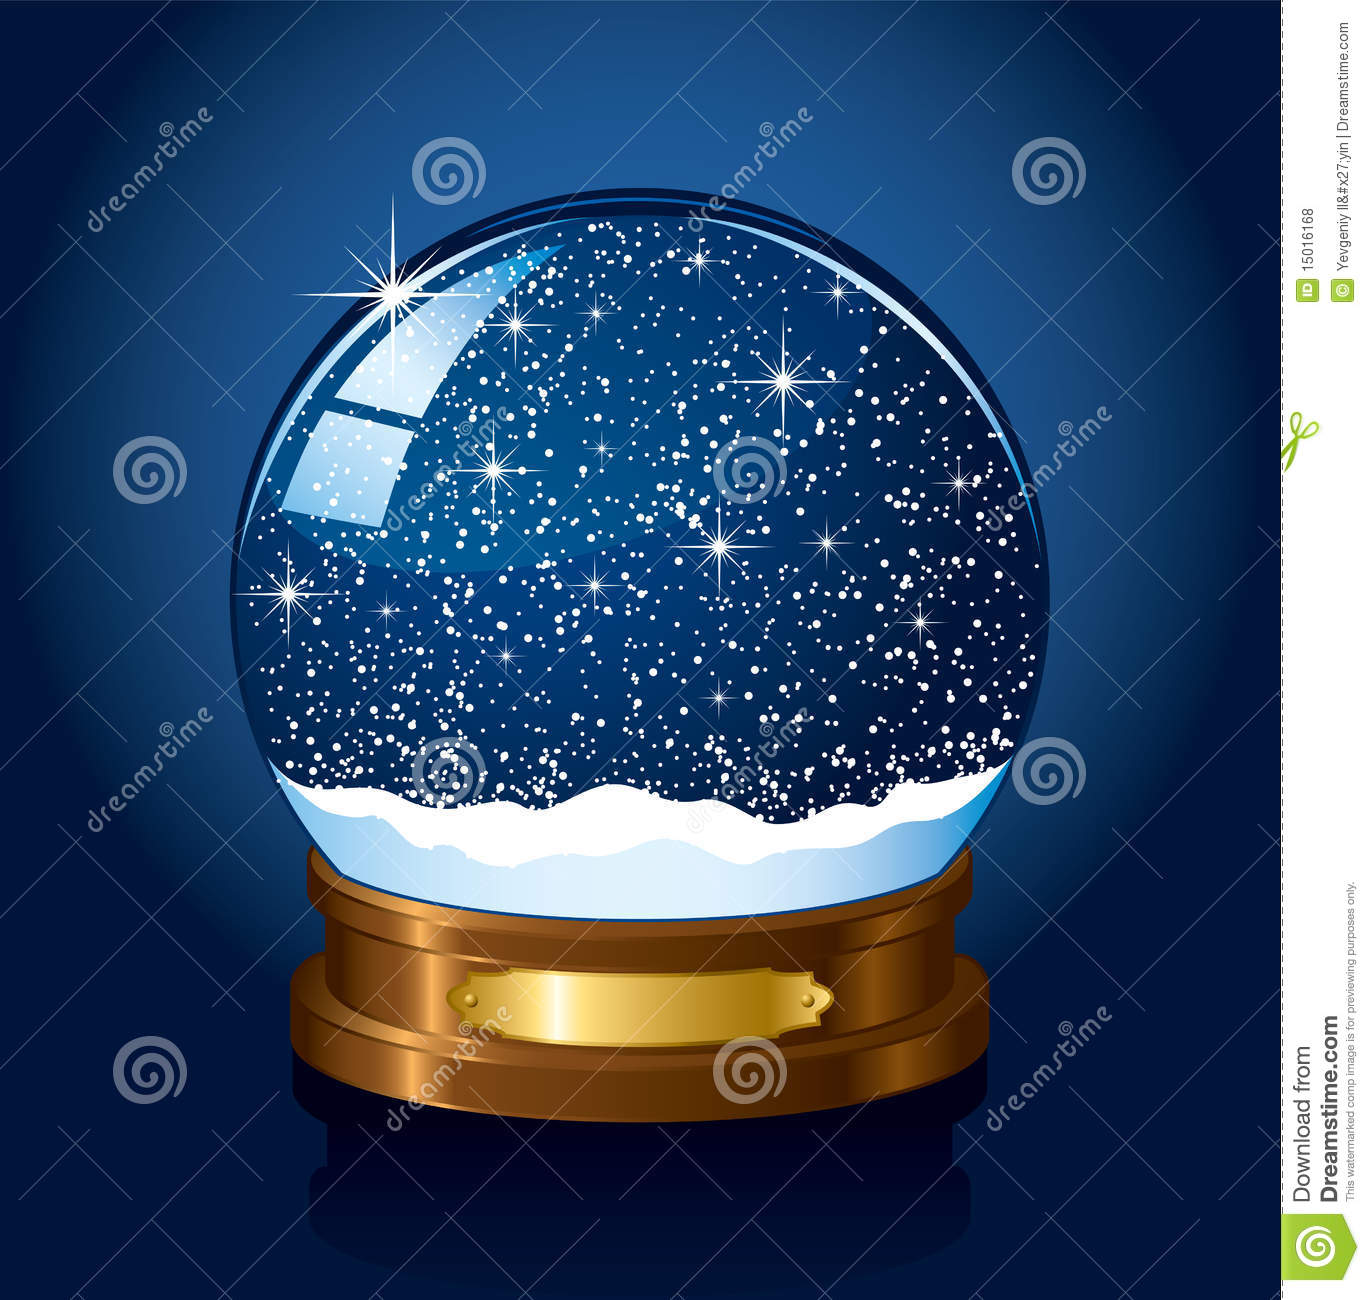 Free Download Of Christmas Wallpaper With Snow Falling Christmas Snow Globe Stock Vector Illustration Of Gold